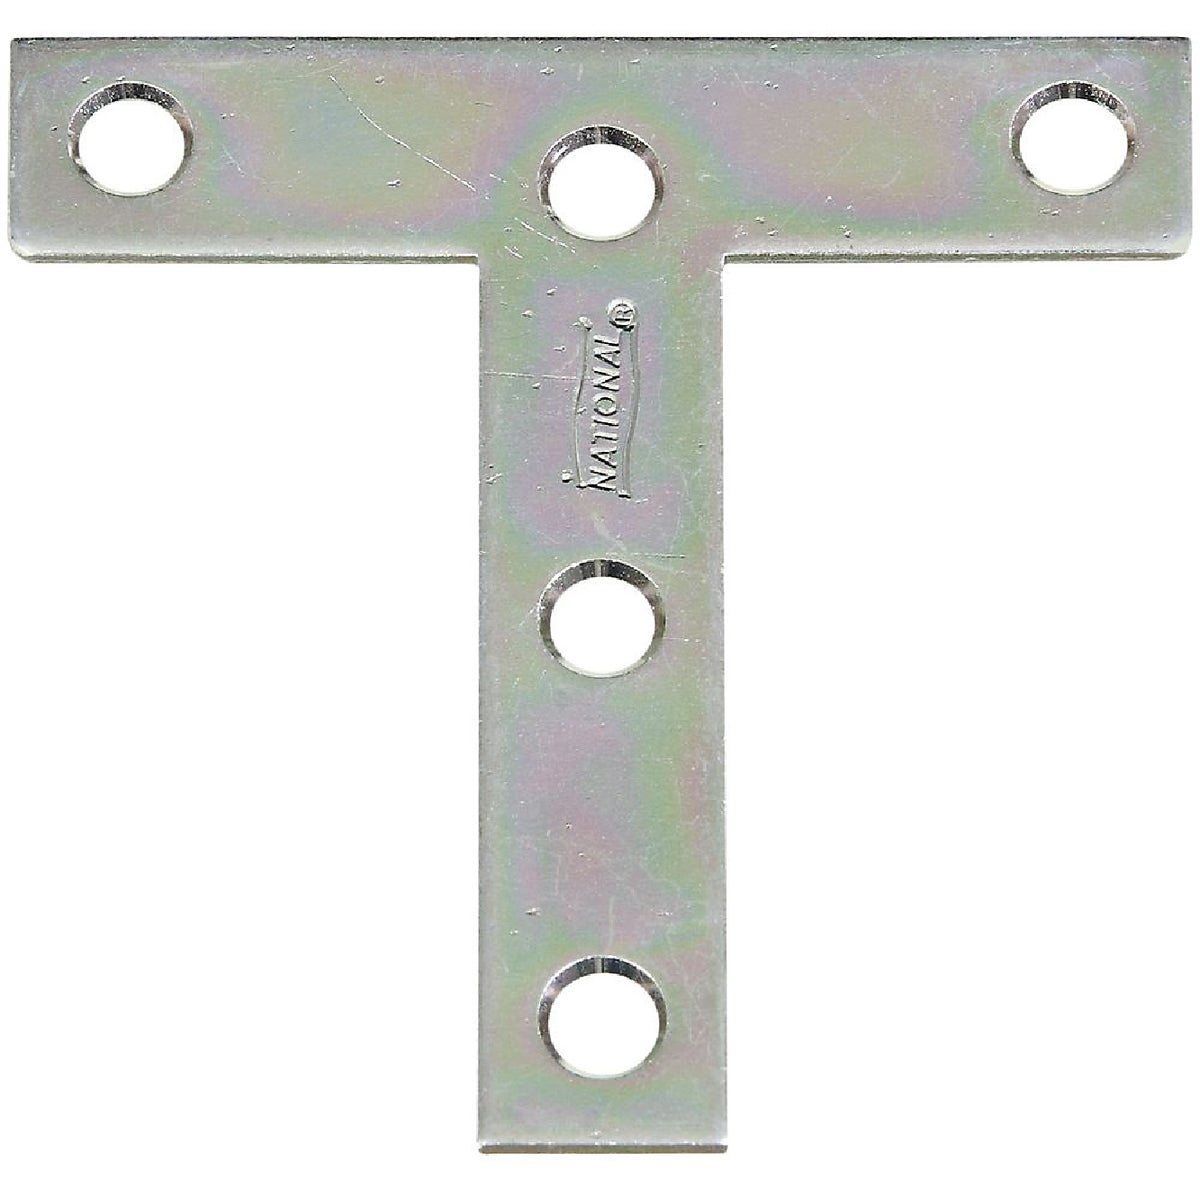 3X3 T-PLATE - N113704 by National Mfg Co